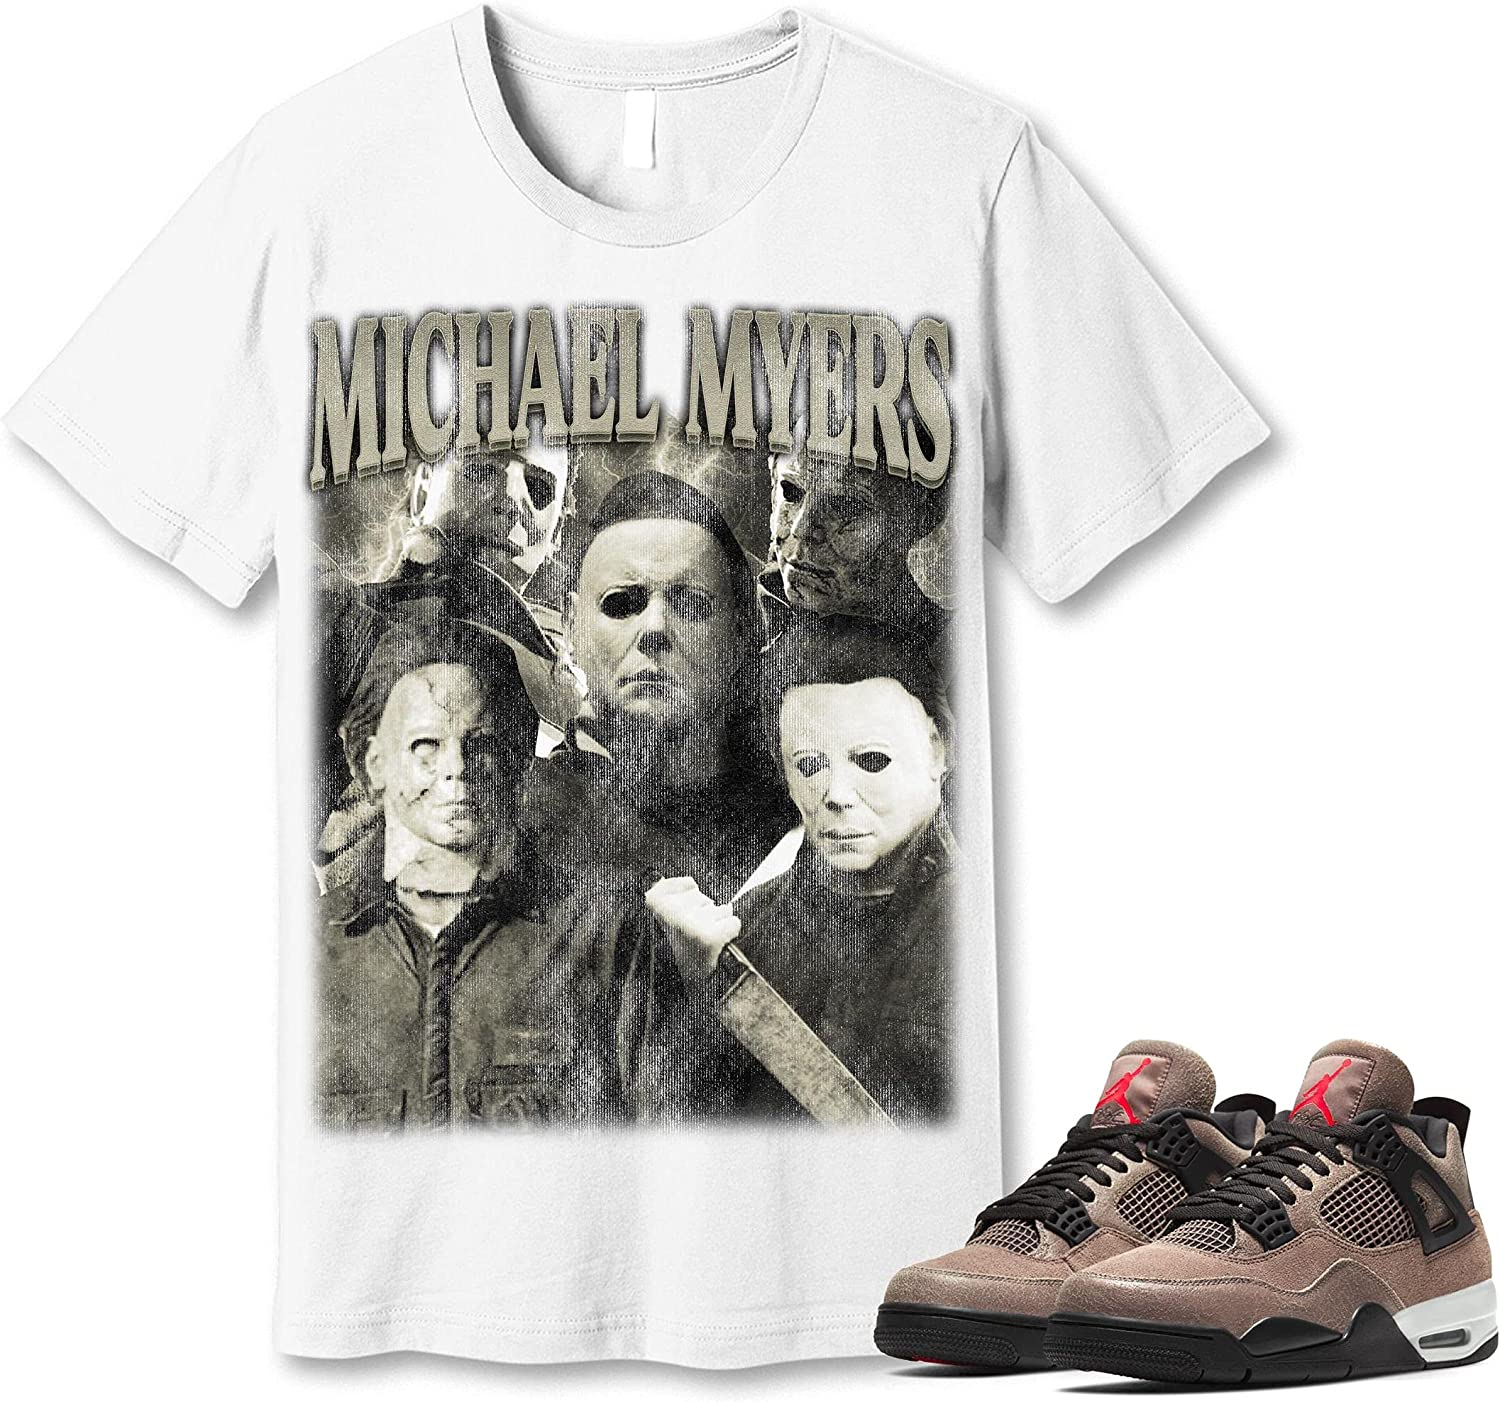 #Michael Discount is also underway #Myer Union T-Shirt to Match Sneake 4 Taupe Challenge the lowest price Haze Jordan